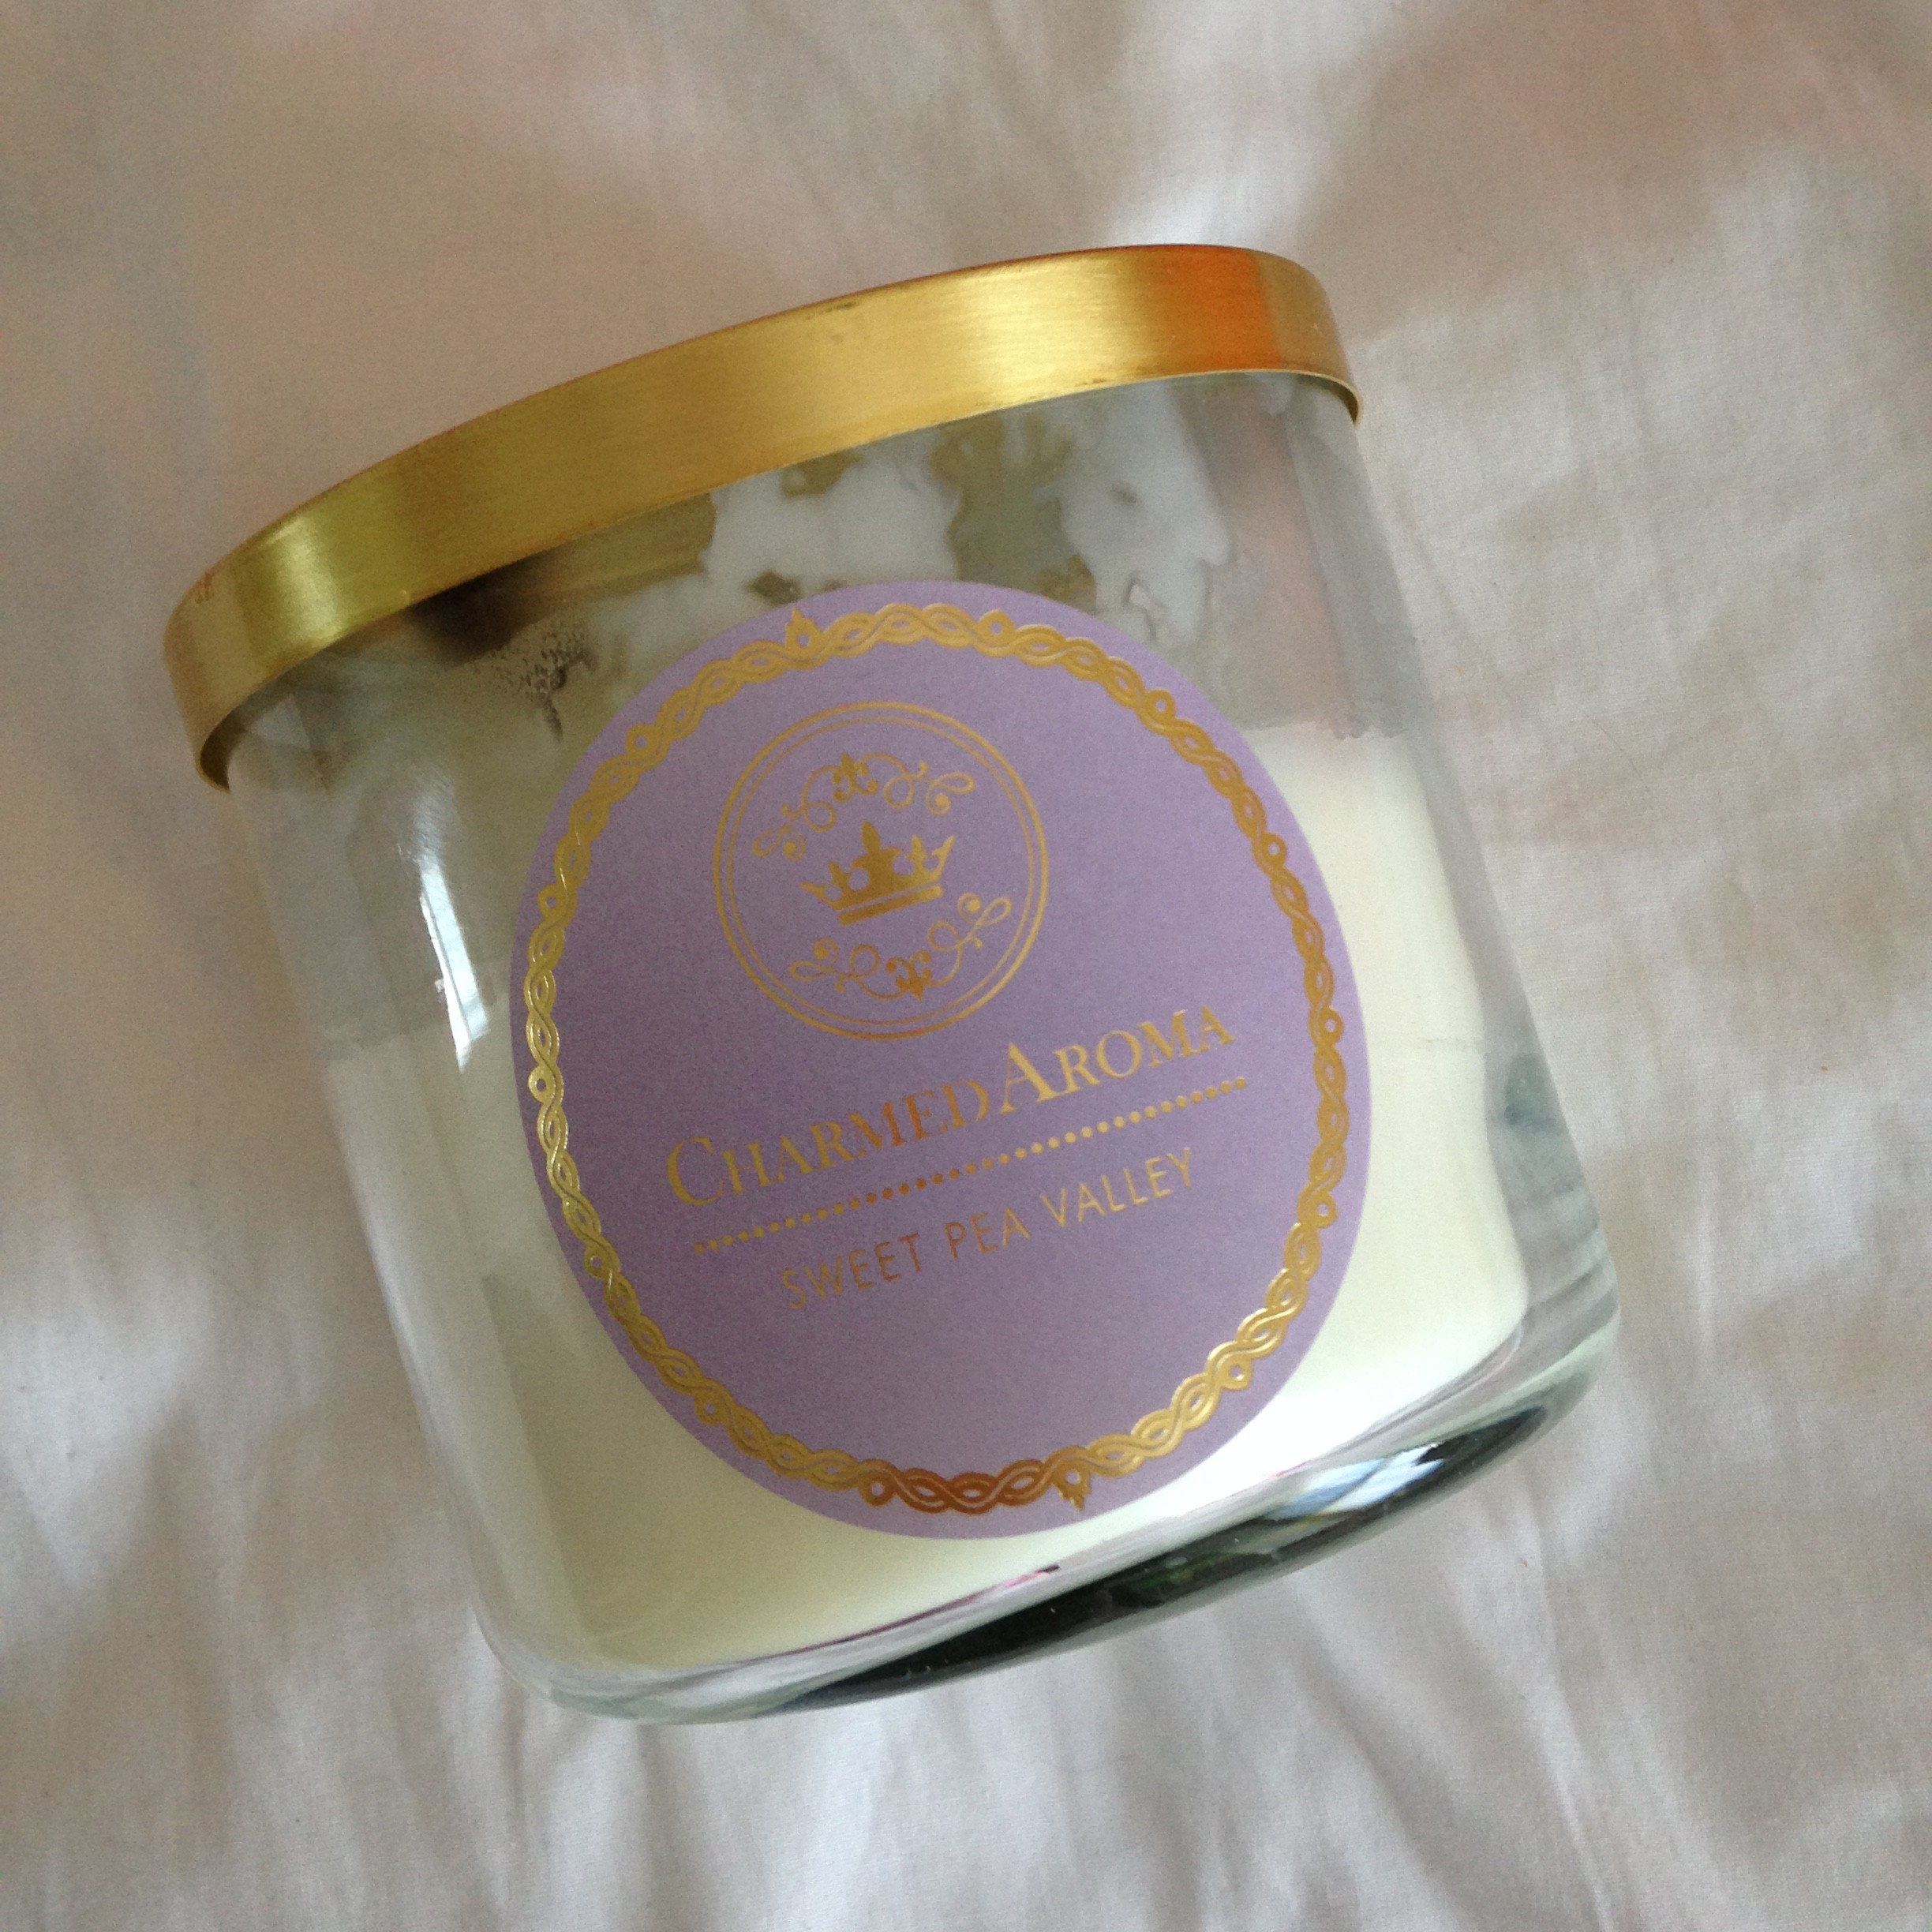 Charmed Aroma Candles Part 2